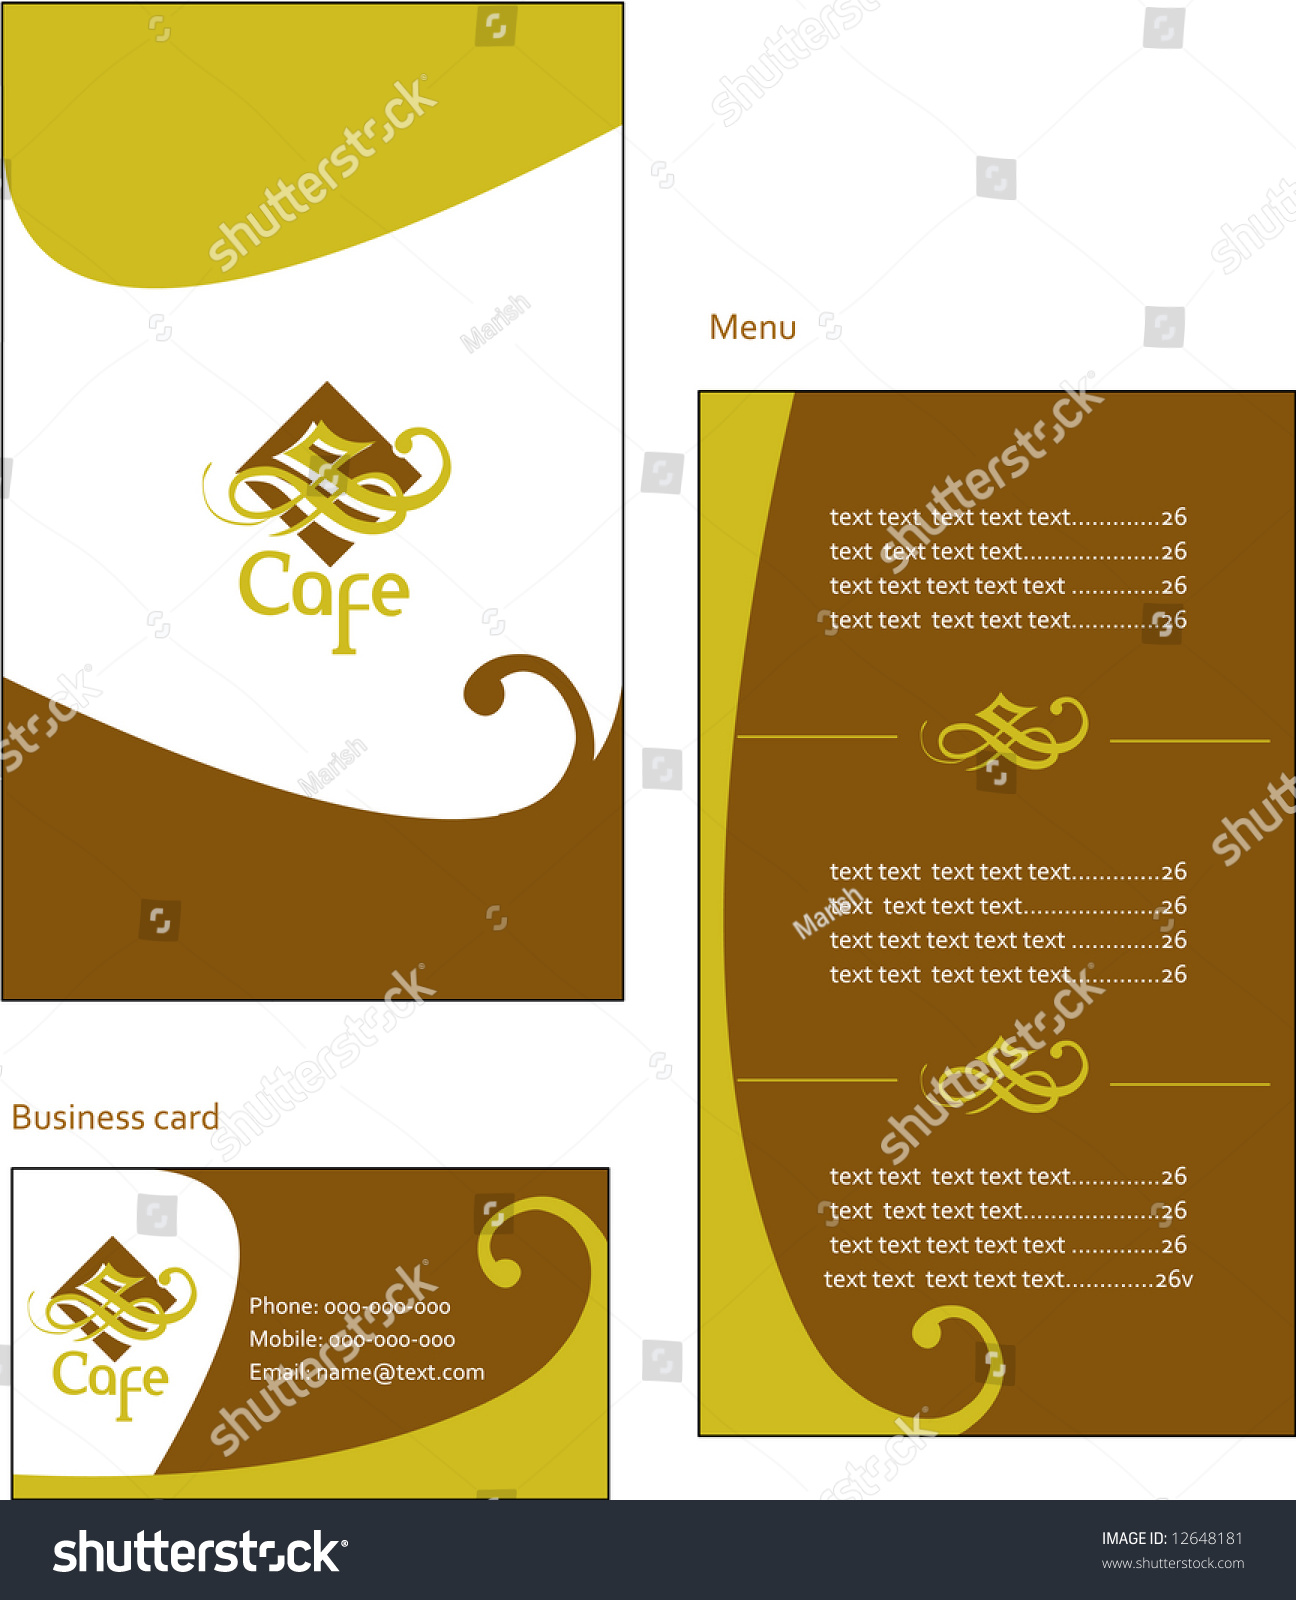 Template Designs European Menu Business Card Stock Vector ...